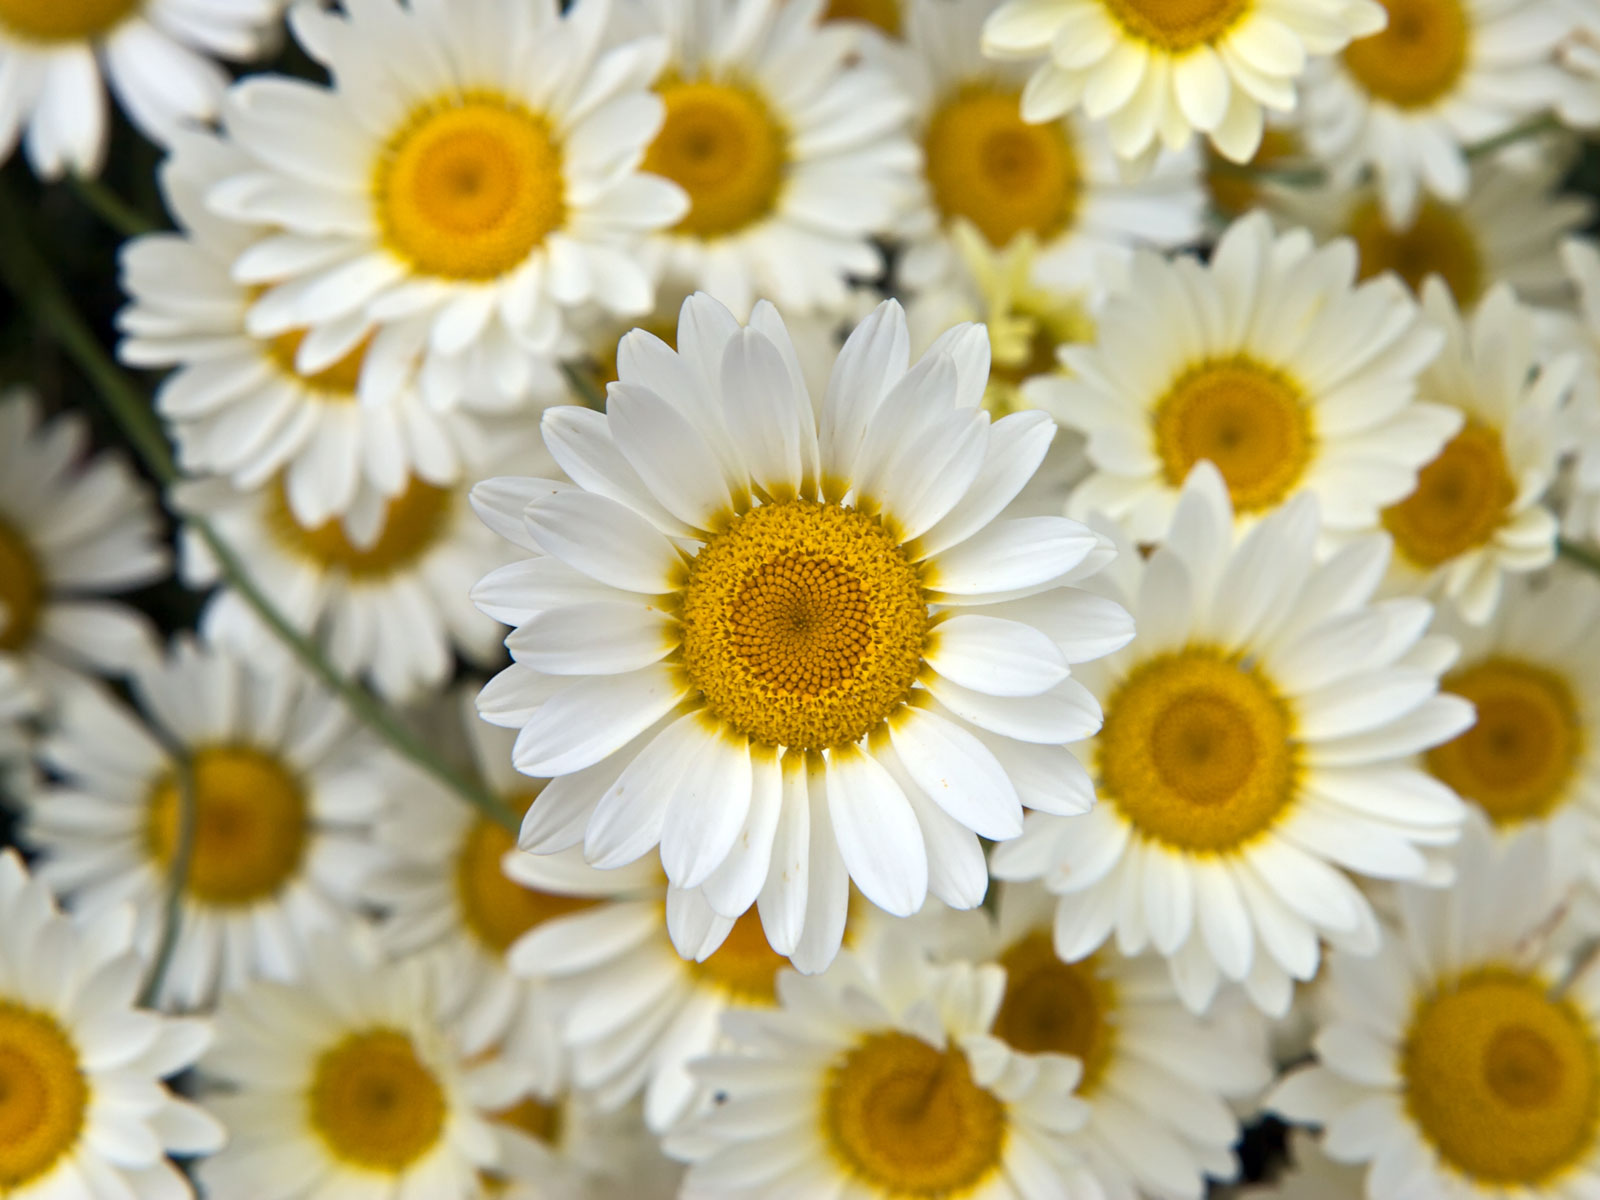 White flowers tumblr 34 background hdflowerwallpaper white flowers tumblr background izmirmasajfo